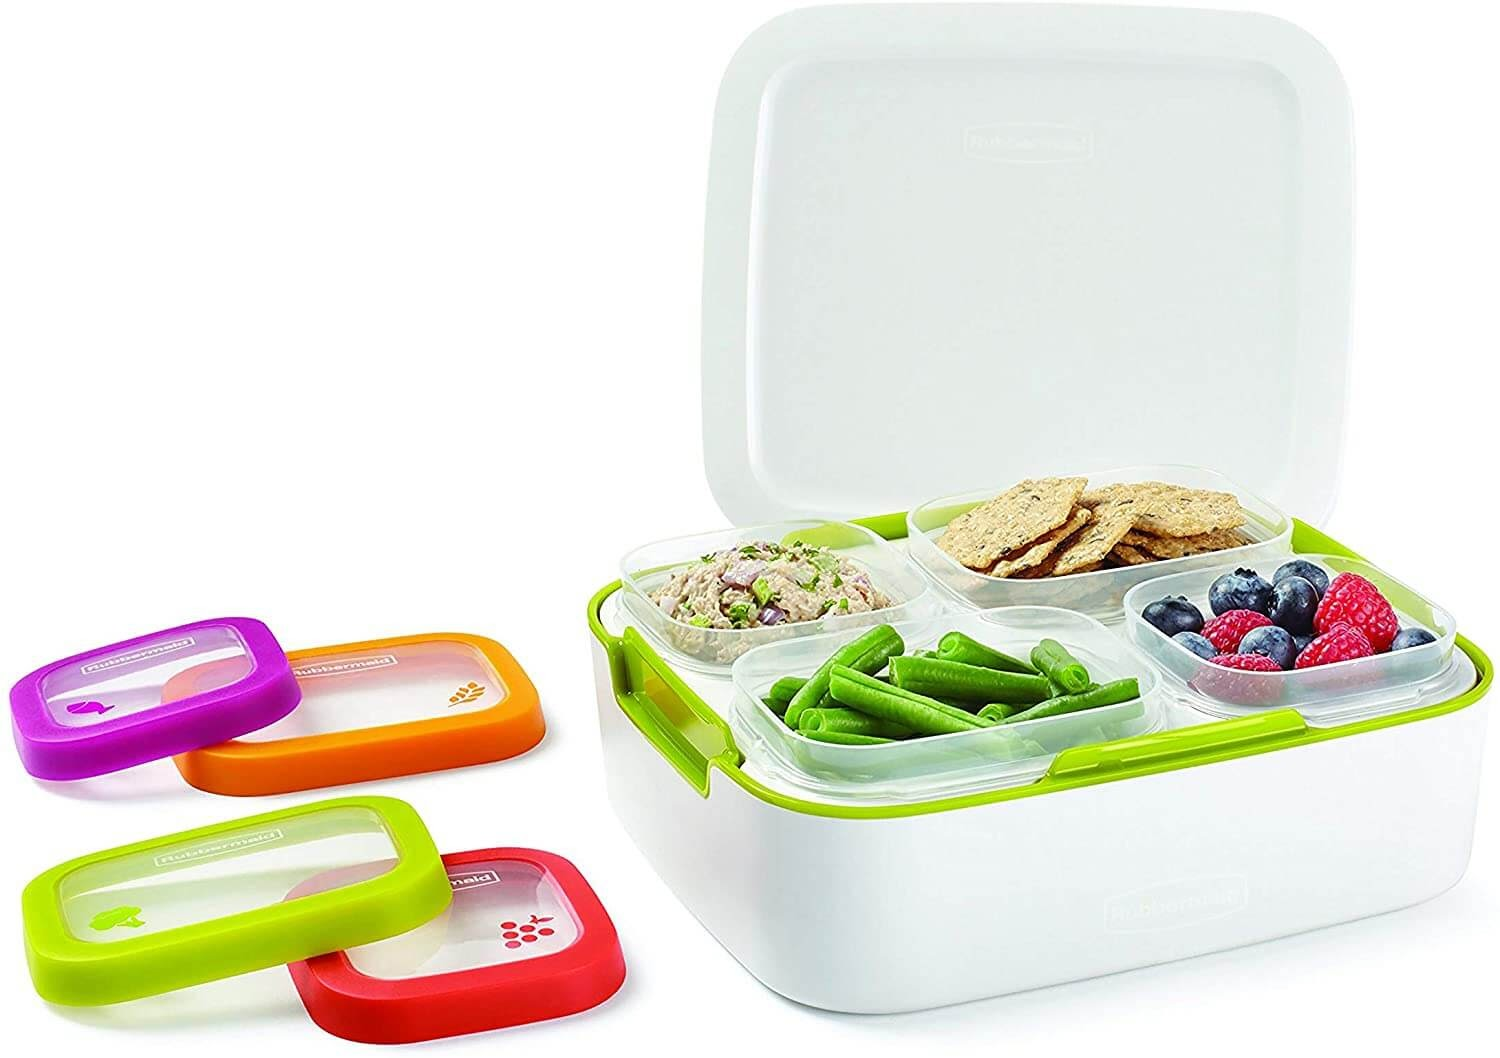 Rubbermaid Pre-Portioned Meal Kit